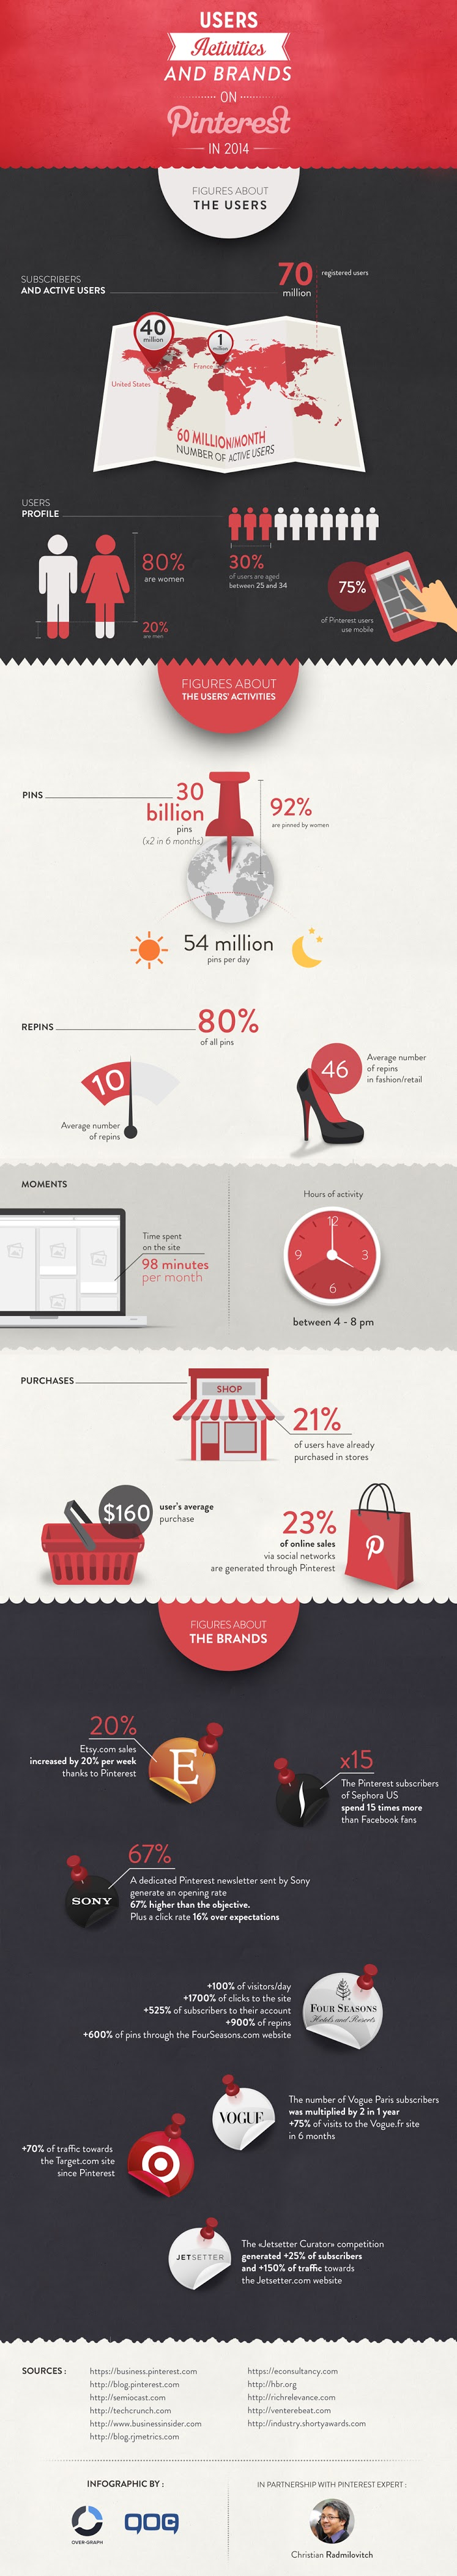 infographic-users-activities-and-brands-on-pinterest-in-2014